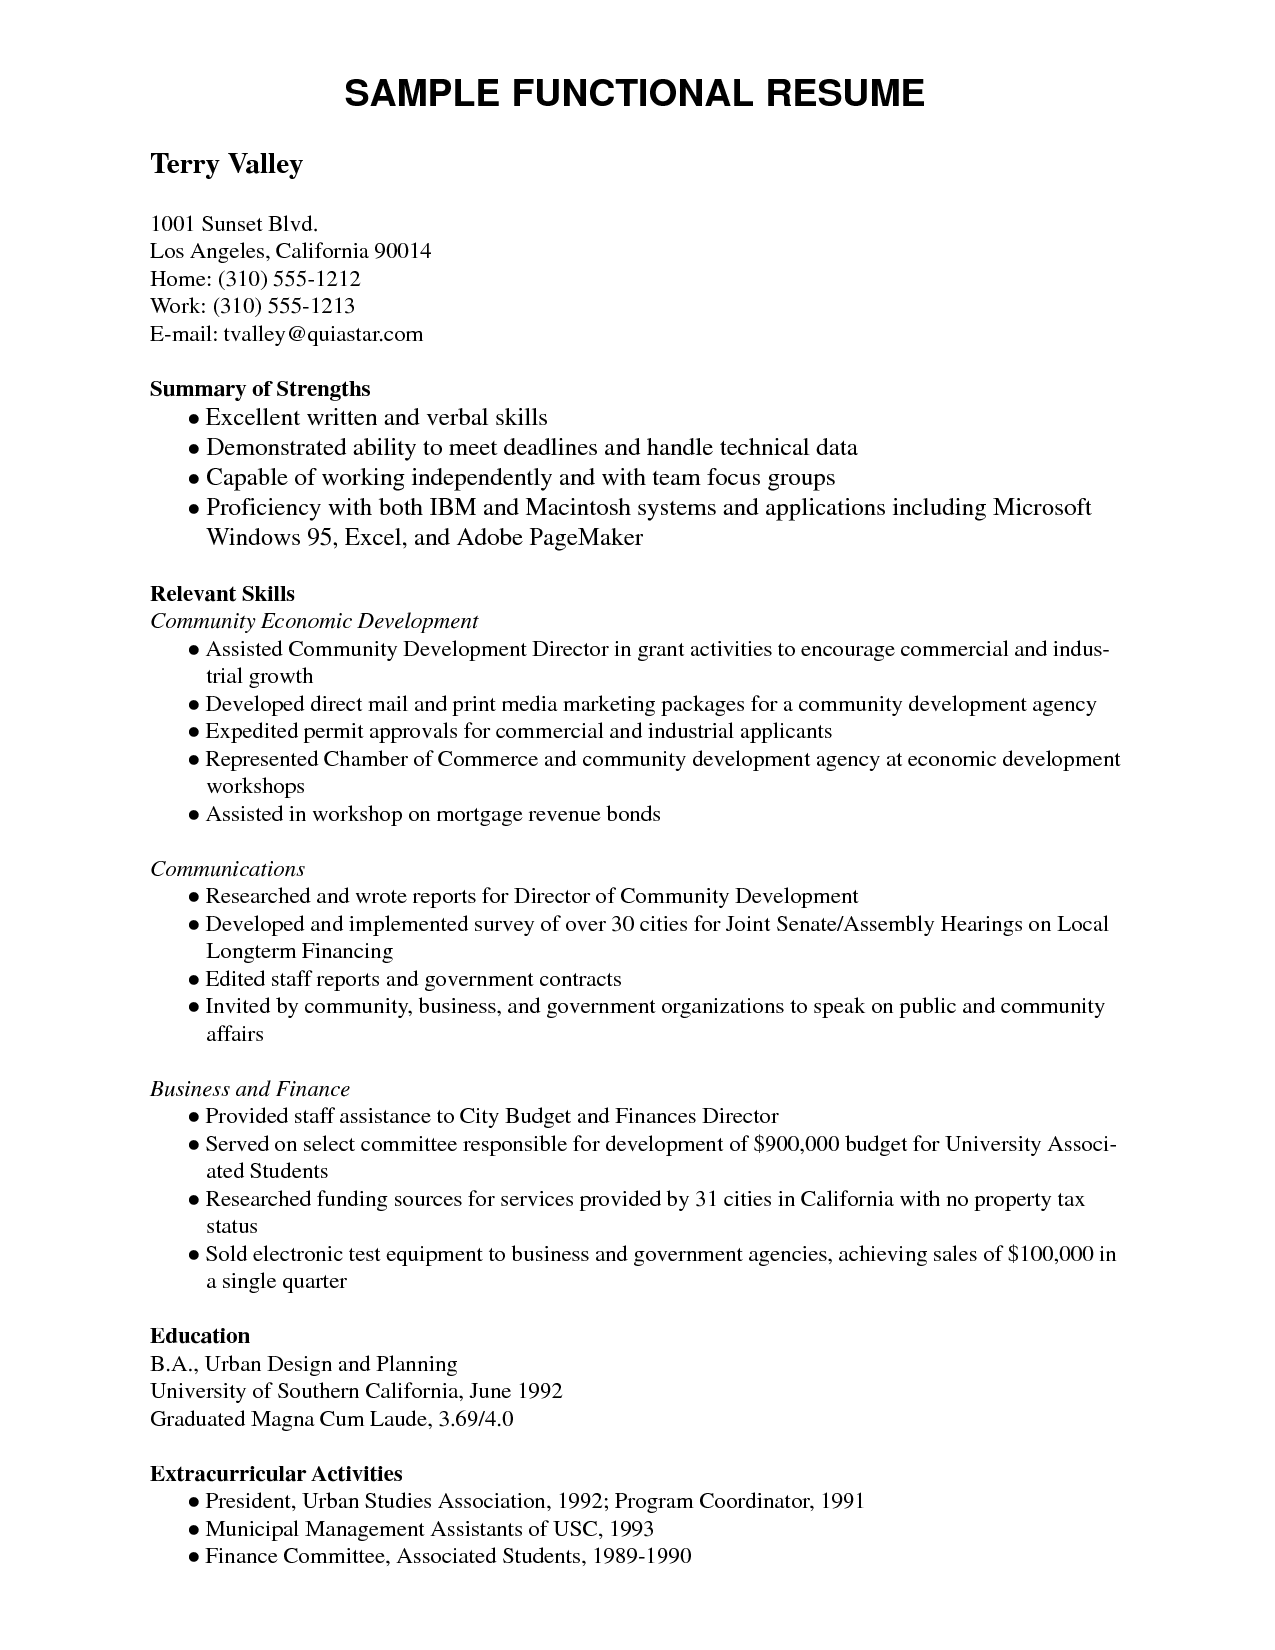 Image result for functional resume example pdf | Resumes | Pinterest ...